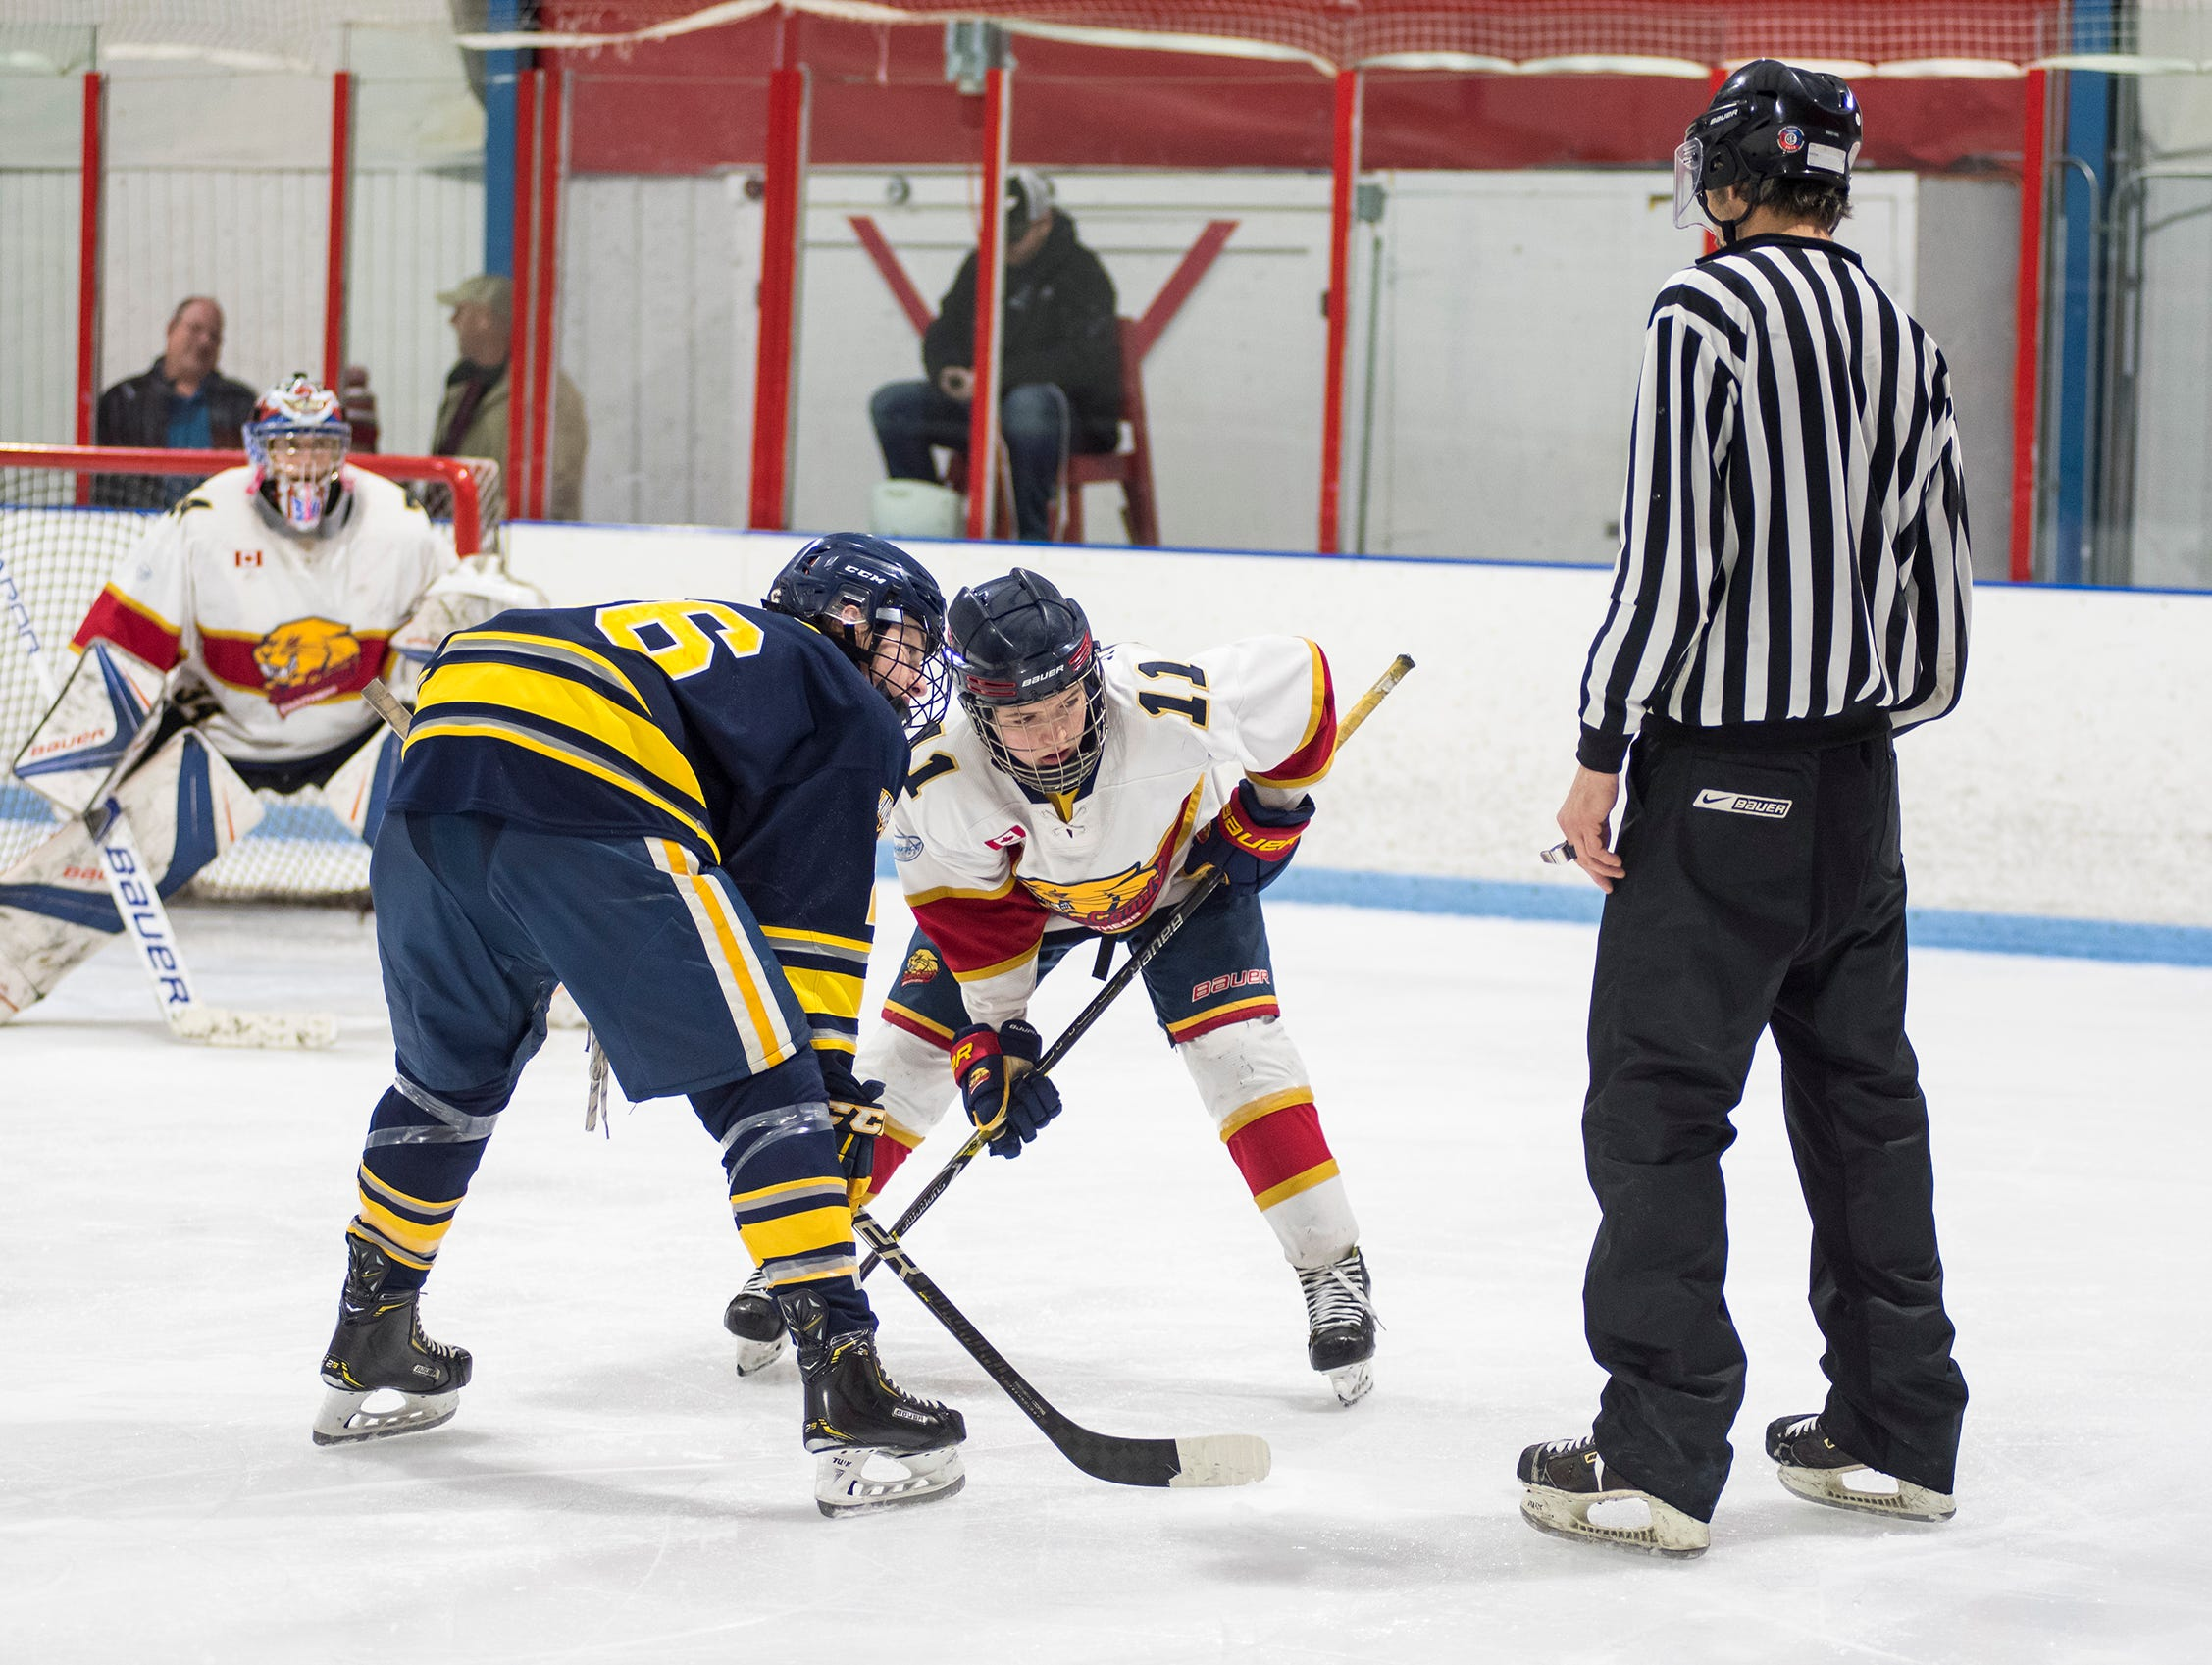 Sun County Panthers forward Luke Sherk (11) and North Jersey Avalanche forward Ryan Schelling face off during their BAAA-E Silver Stick Finals match Saturday, Jan. 5, 2019 at Glacier Pointe Ice Complex.